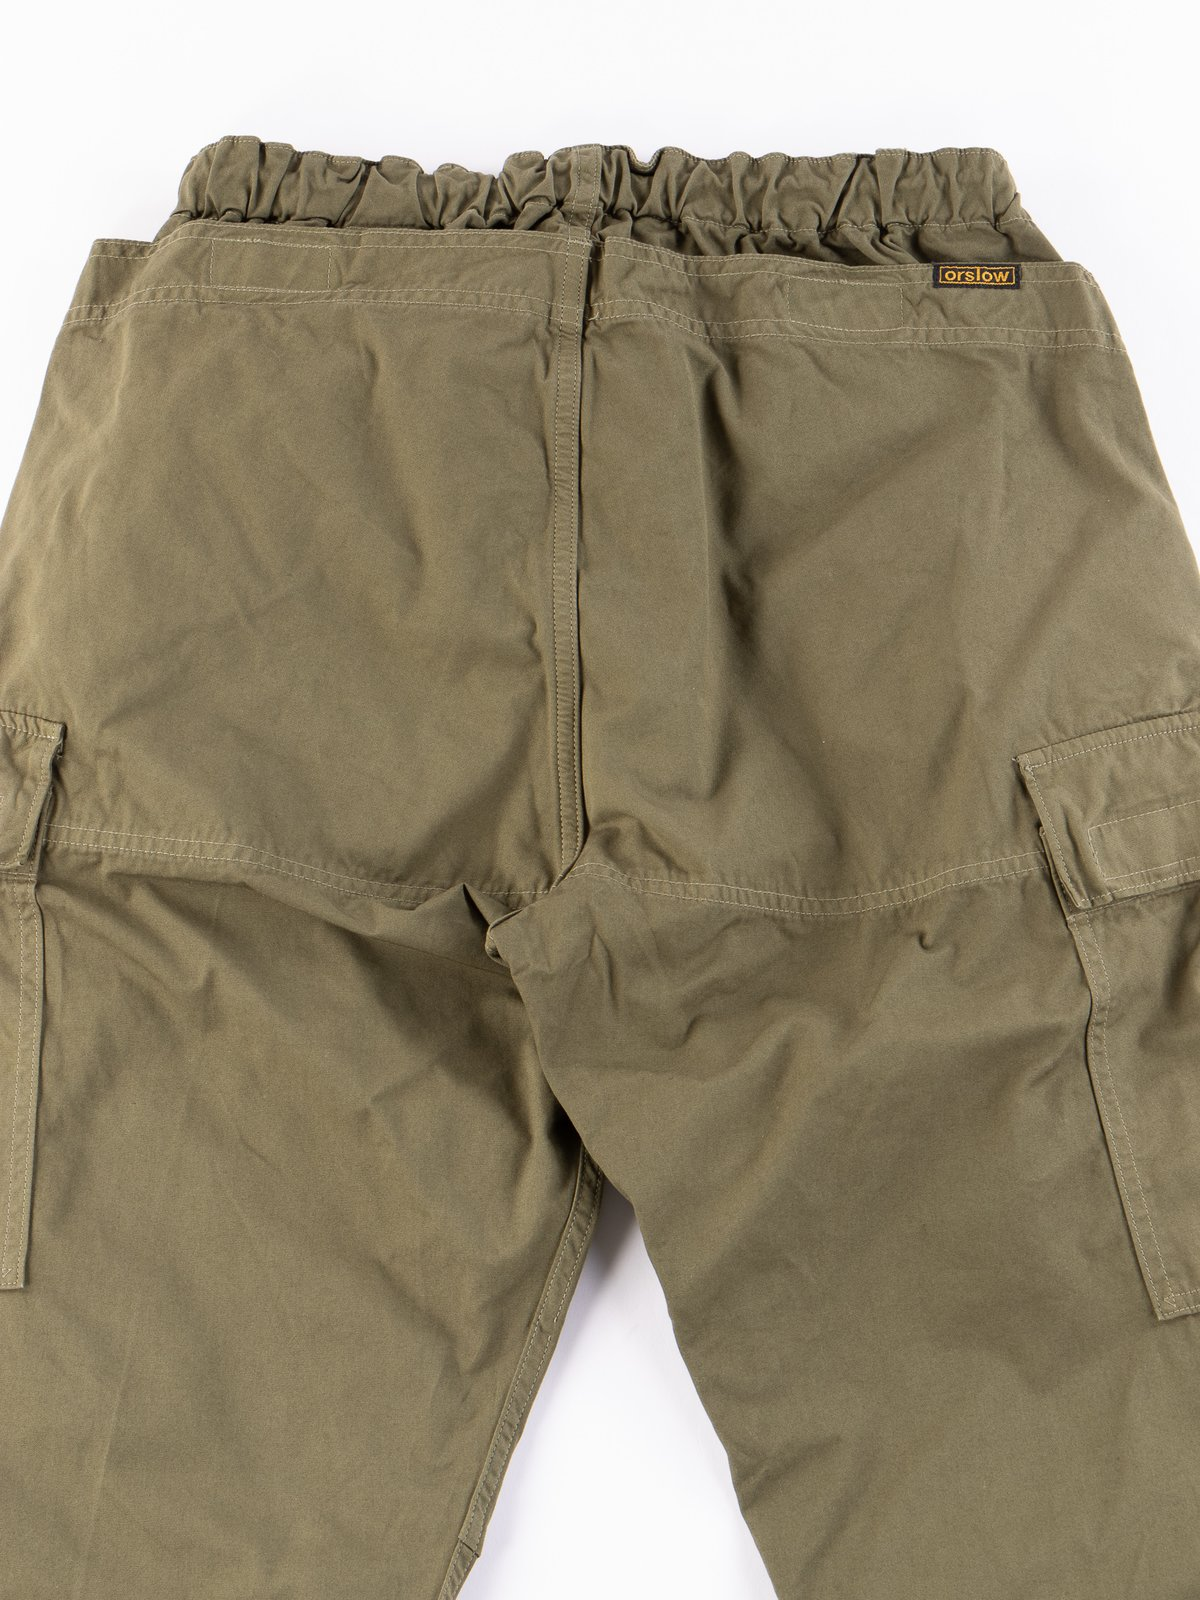 Army Weather Cloth Easy Cargo Pant - Image 9